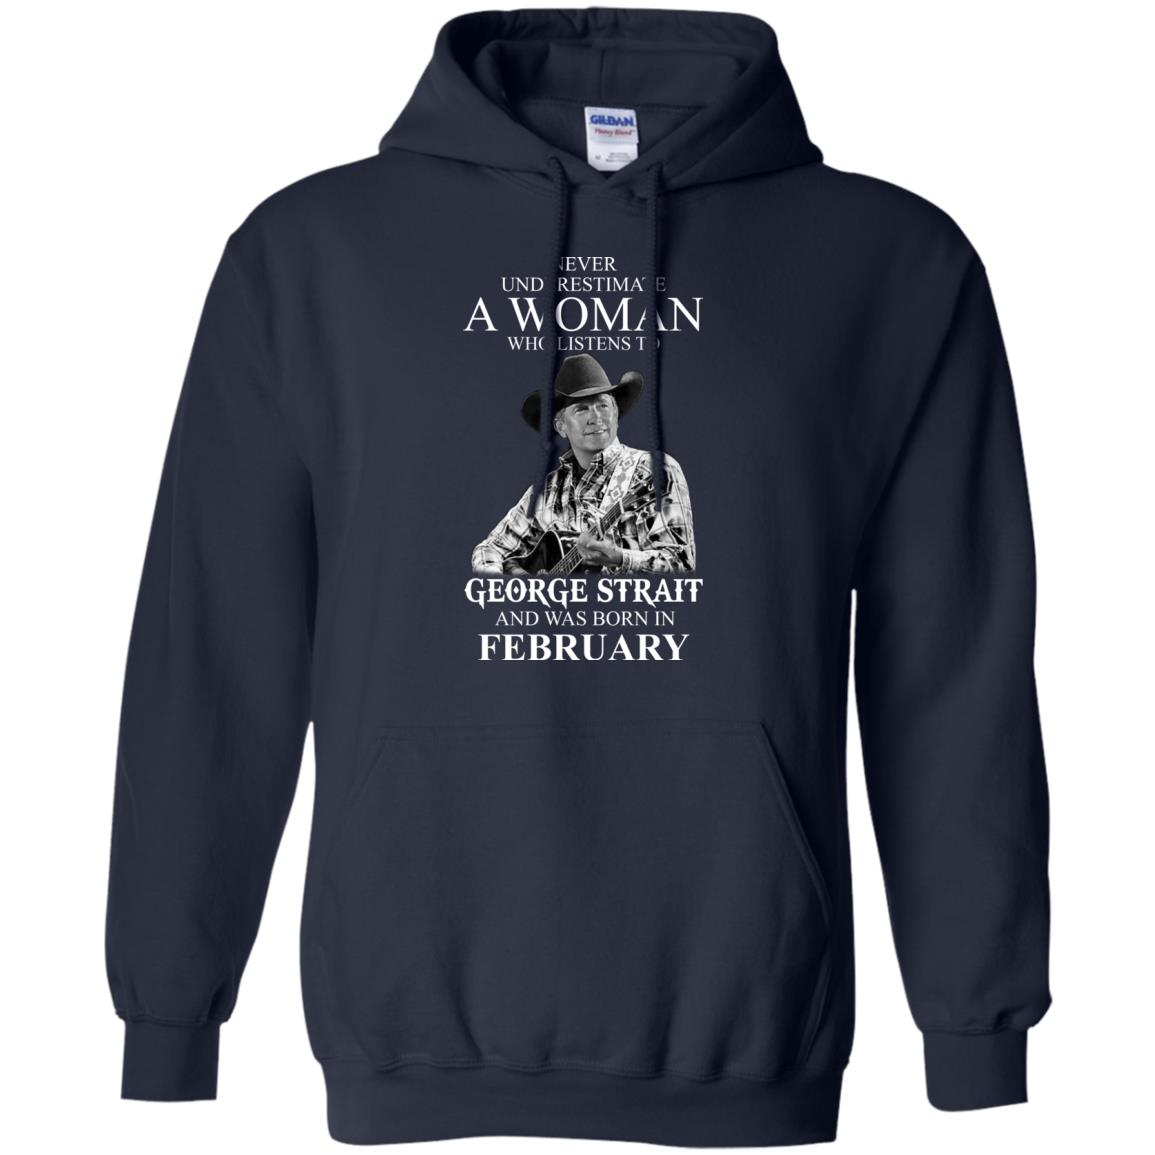 image 451 - Never Underestimate A Woman Who Listens To George Strait And Was Born In February shirt